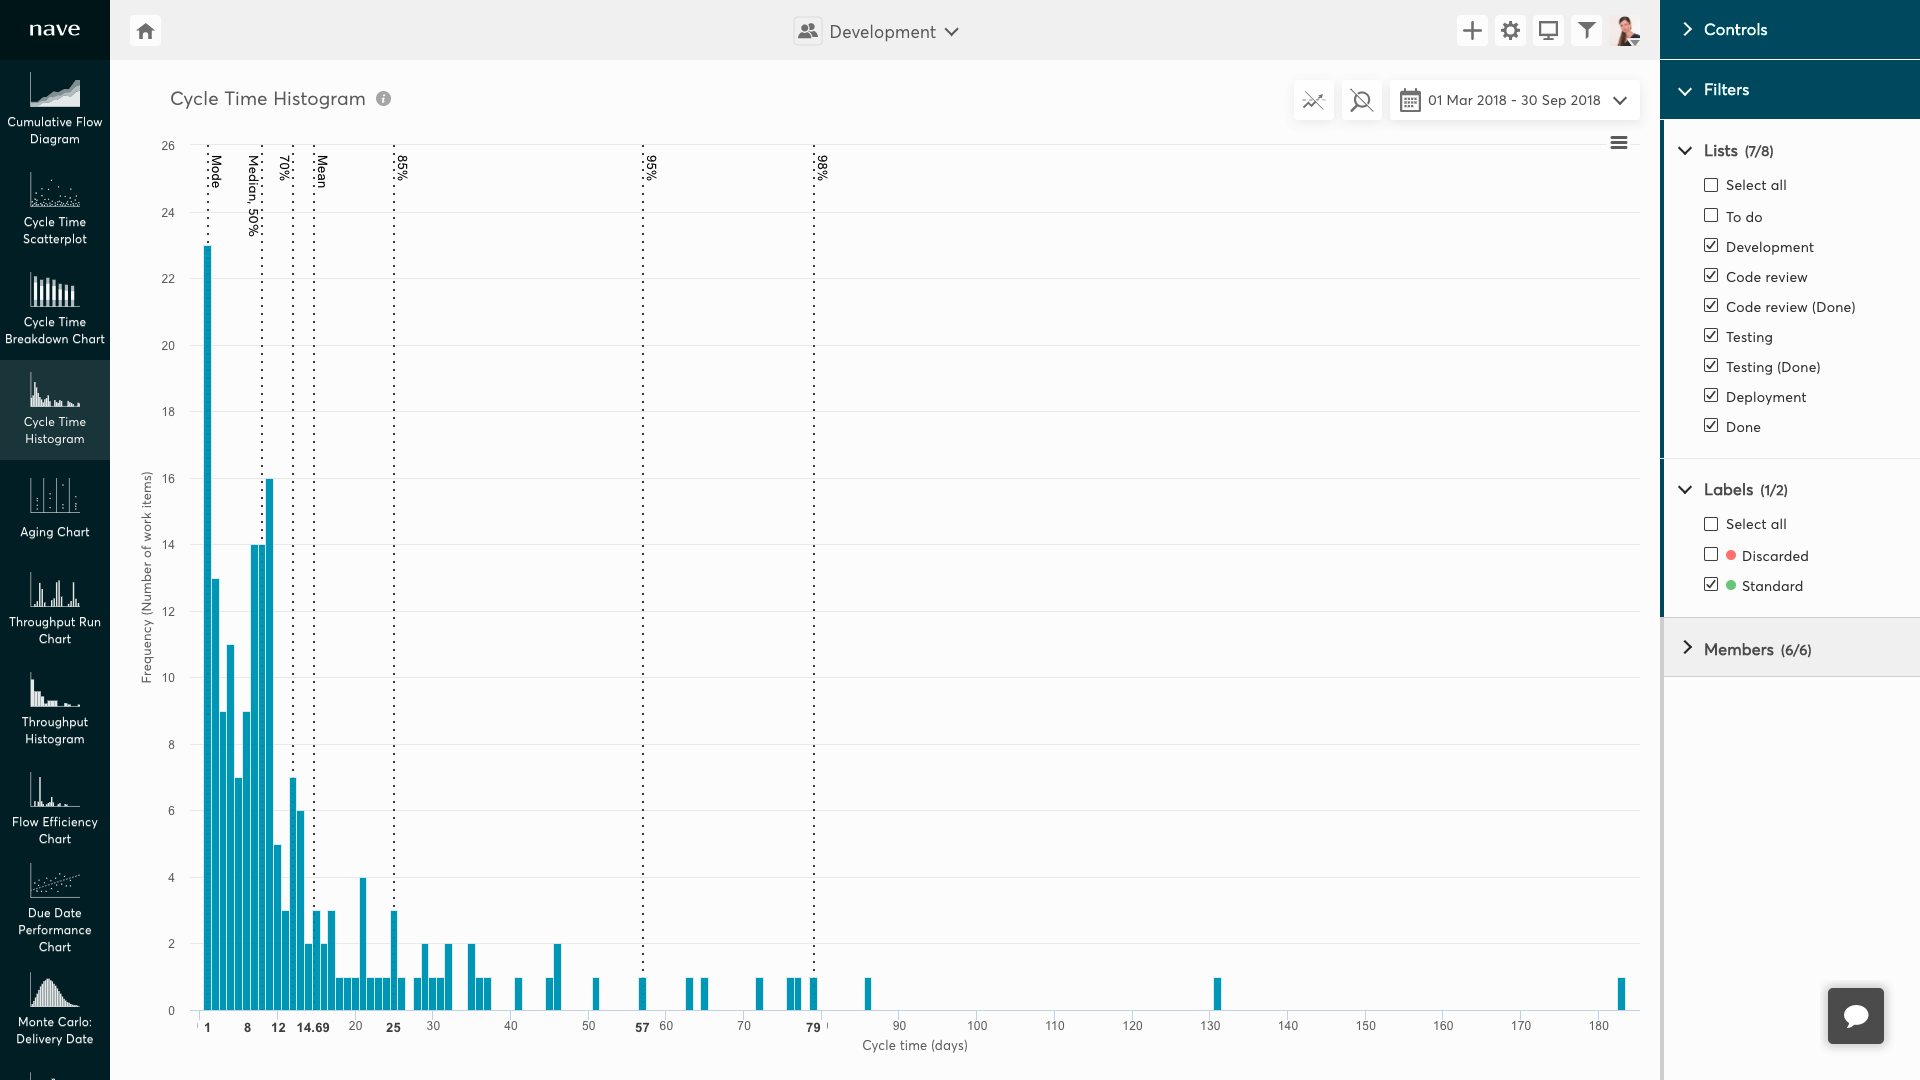 Cycle Time Histogram without abandoned work